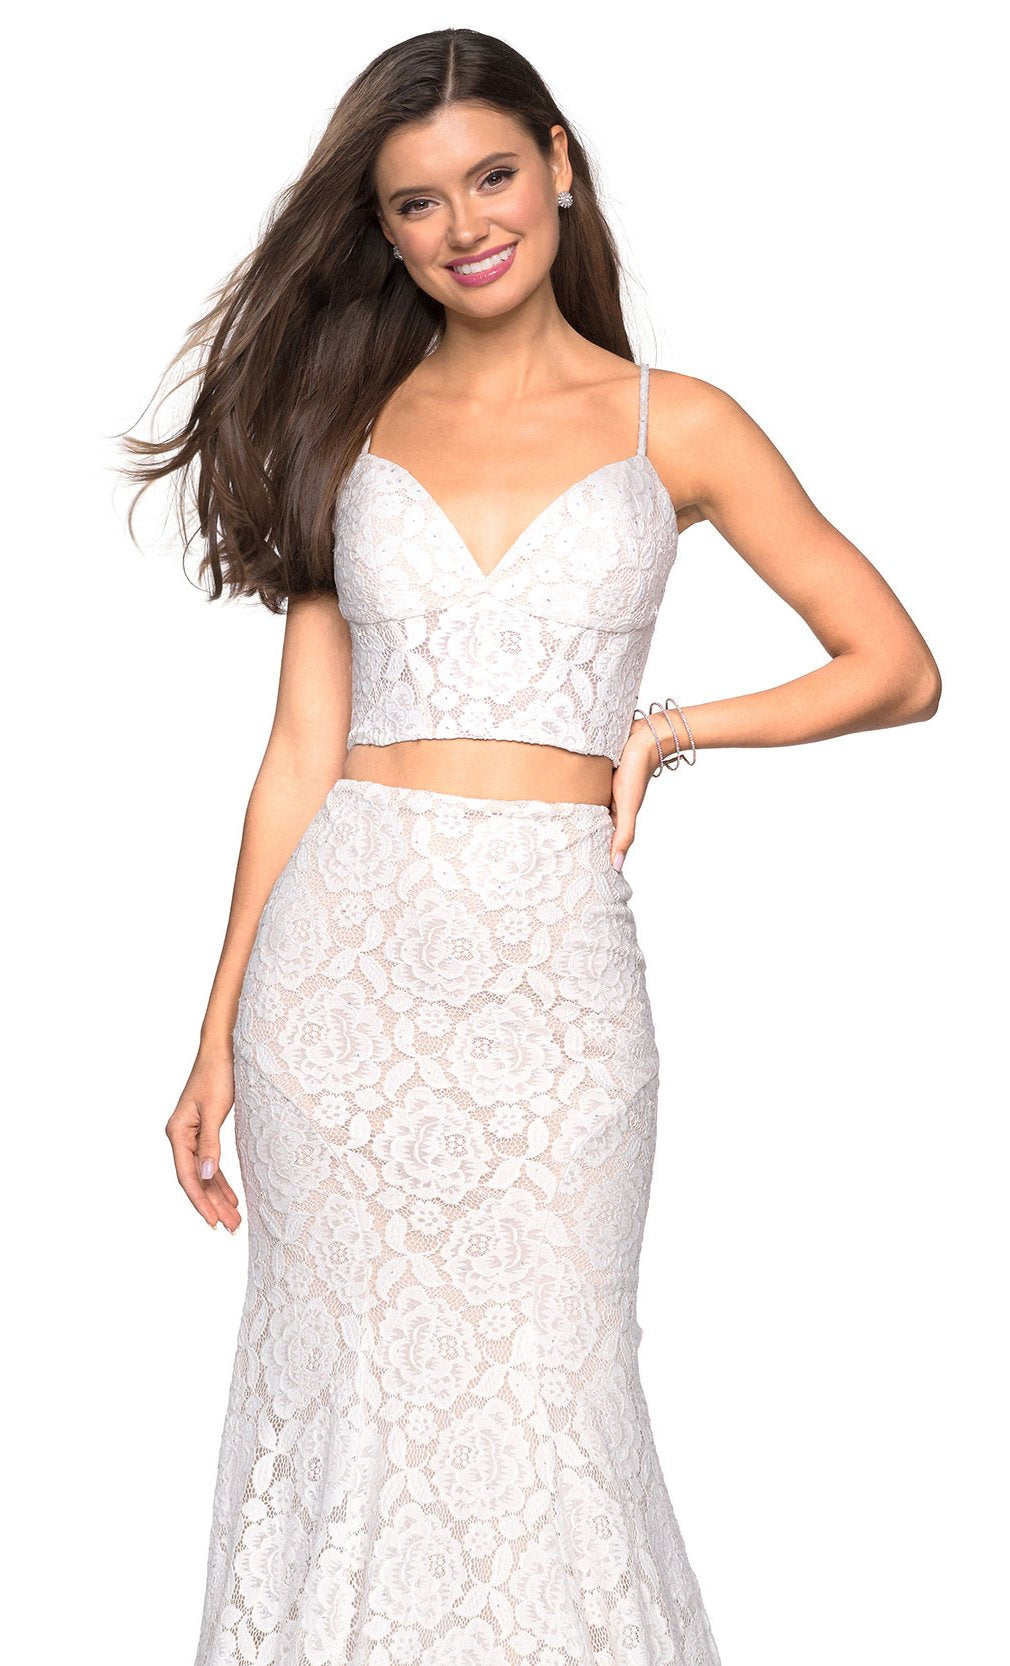 La Femme - 27589SC Spaghetti Strap Two-Piece Lace Mermaid Dress